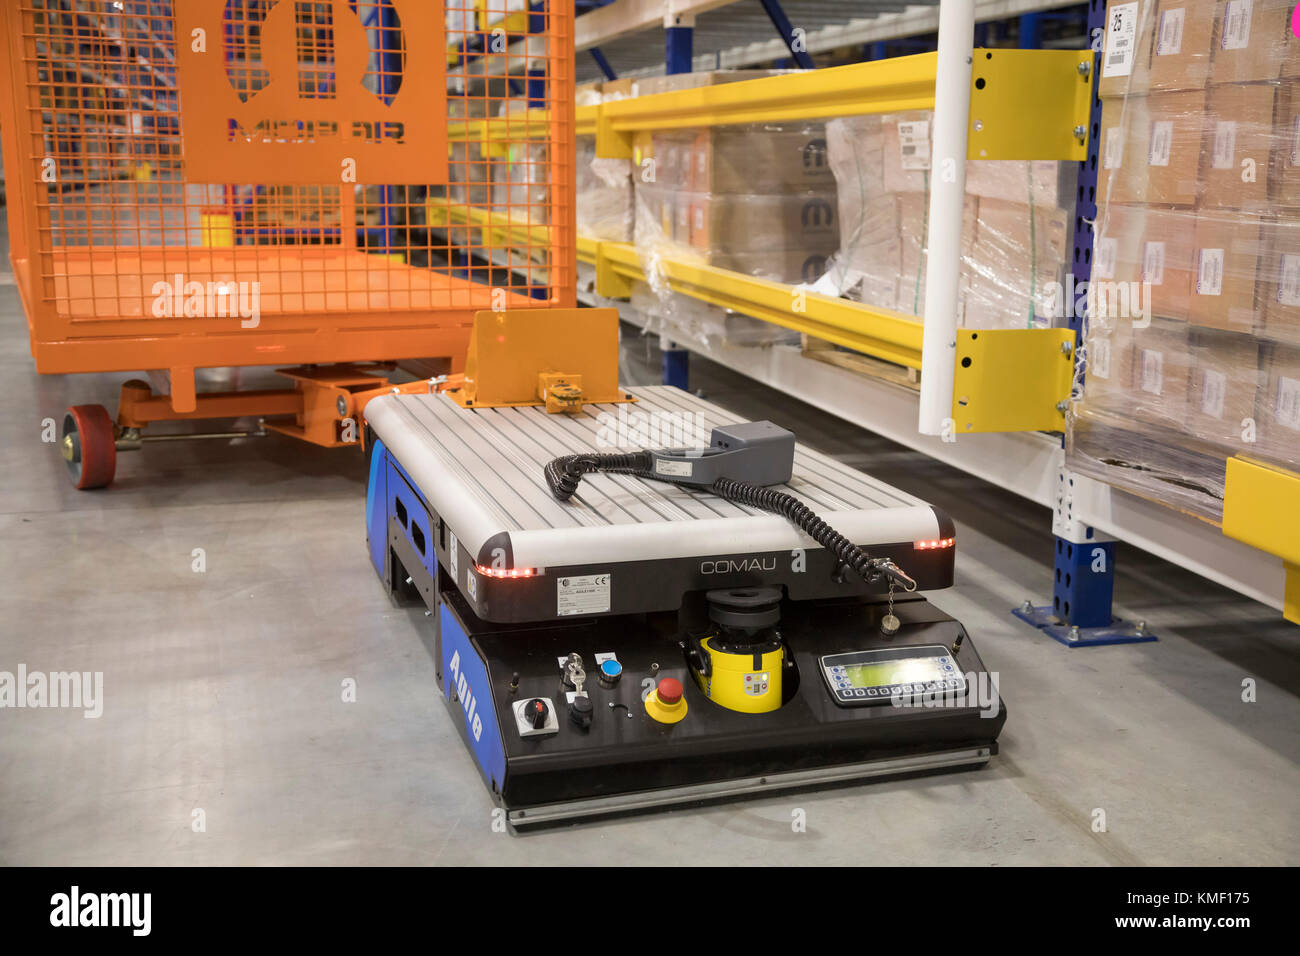 Romulus, Michigan - An automated guided vehicle can move parts at a Mopar auto parts distribution center. Mopar - Stock Image